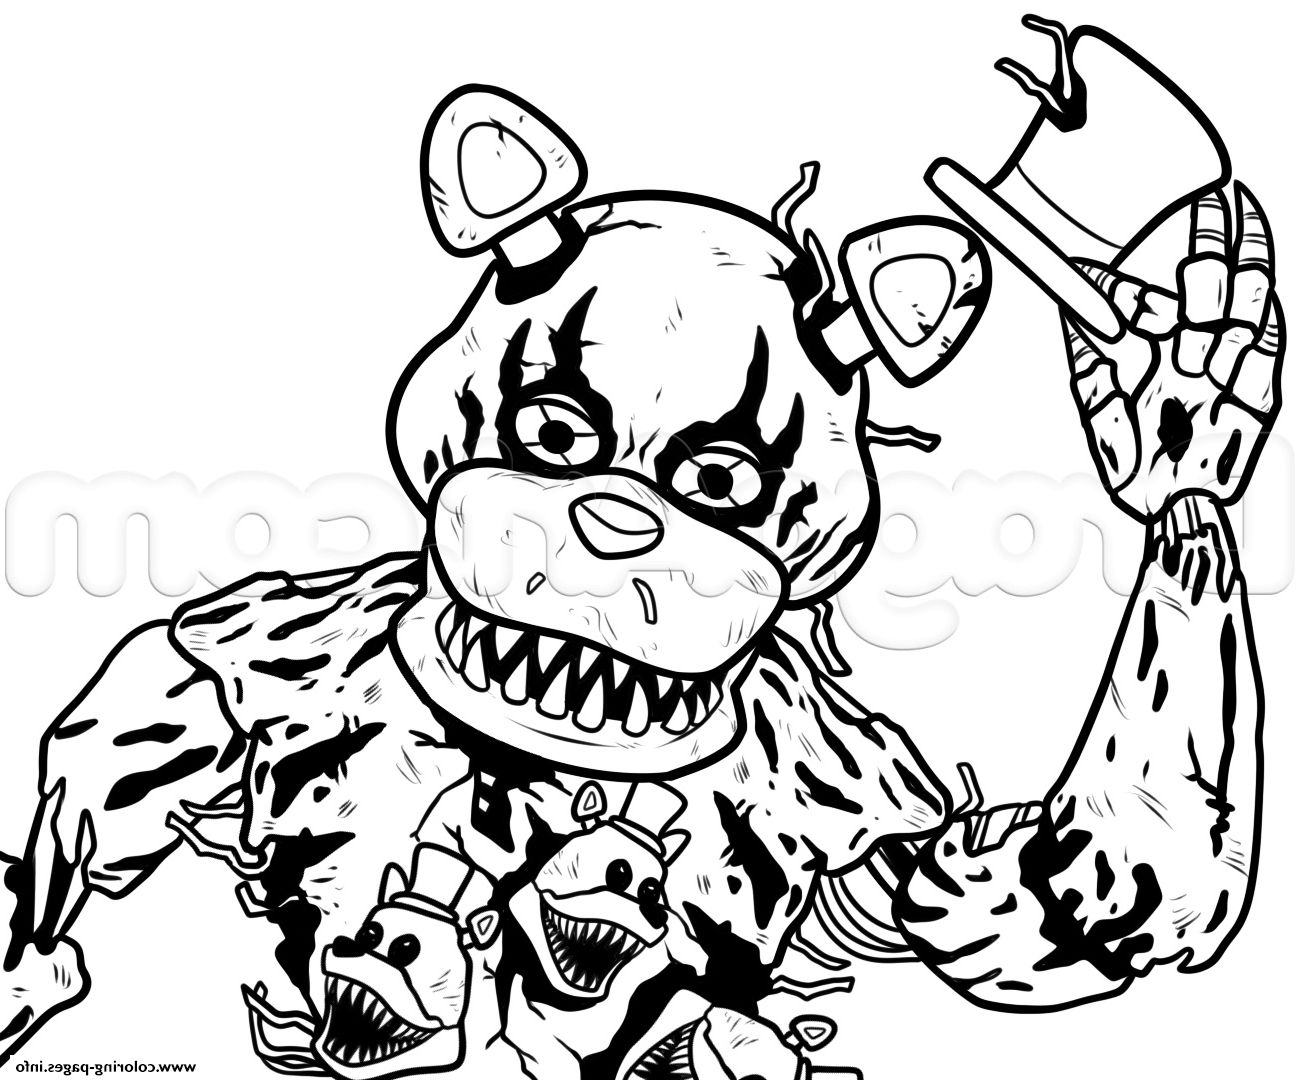 Five Nights At Freddy 039 S Coloring Pages Fnaf Coloring Pages Bear Coloring Pages Coloring Pages